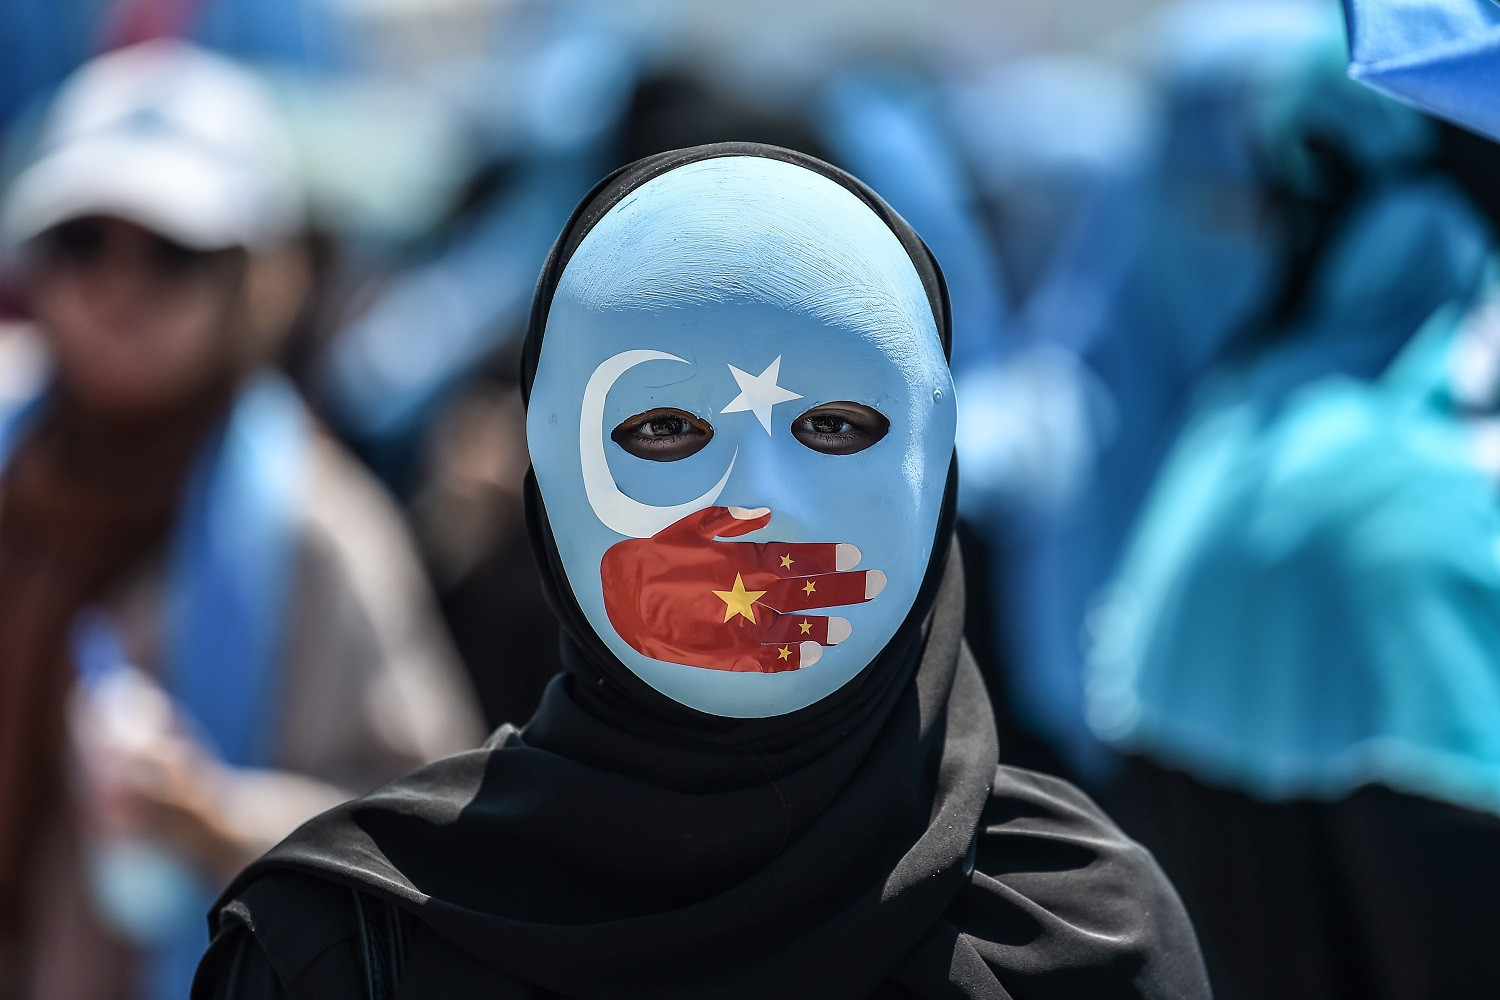 Uighurs In China: Suffering in Silence?